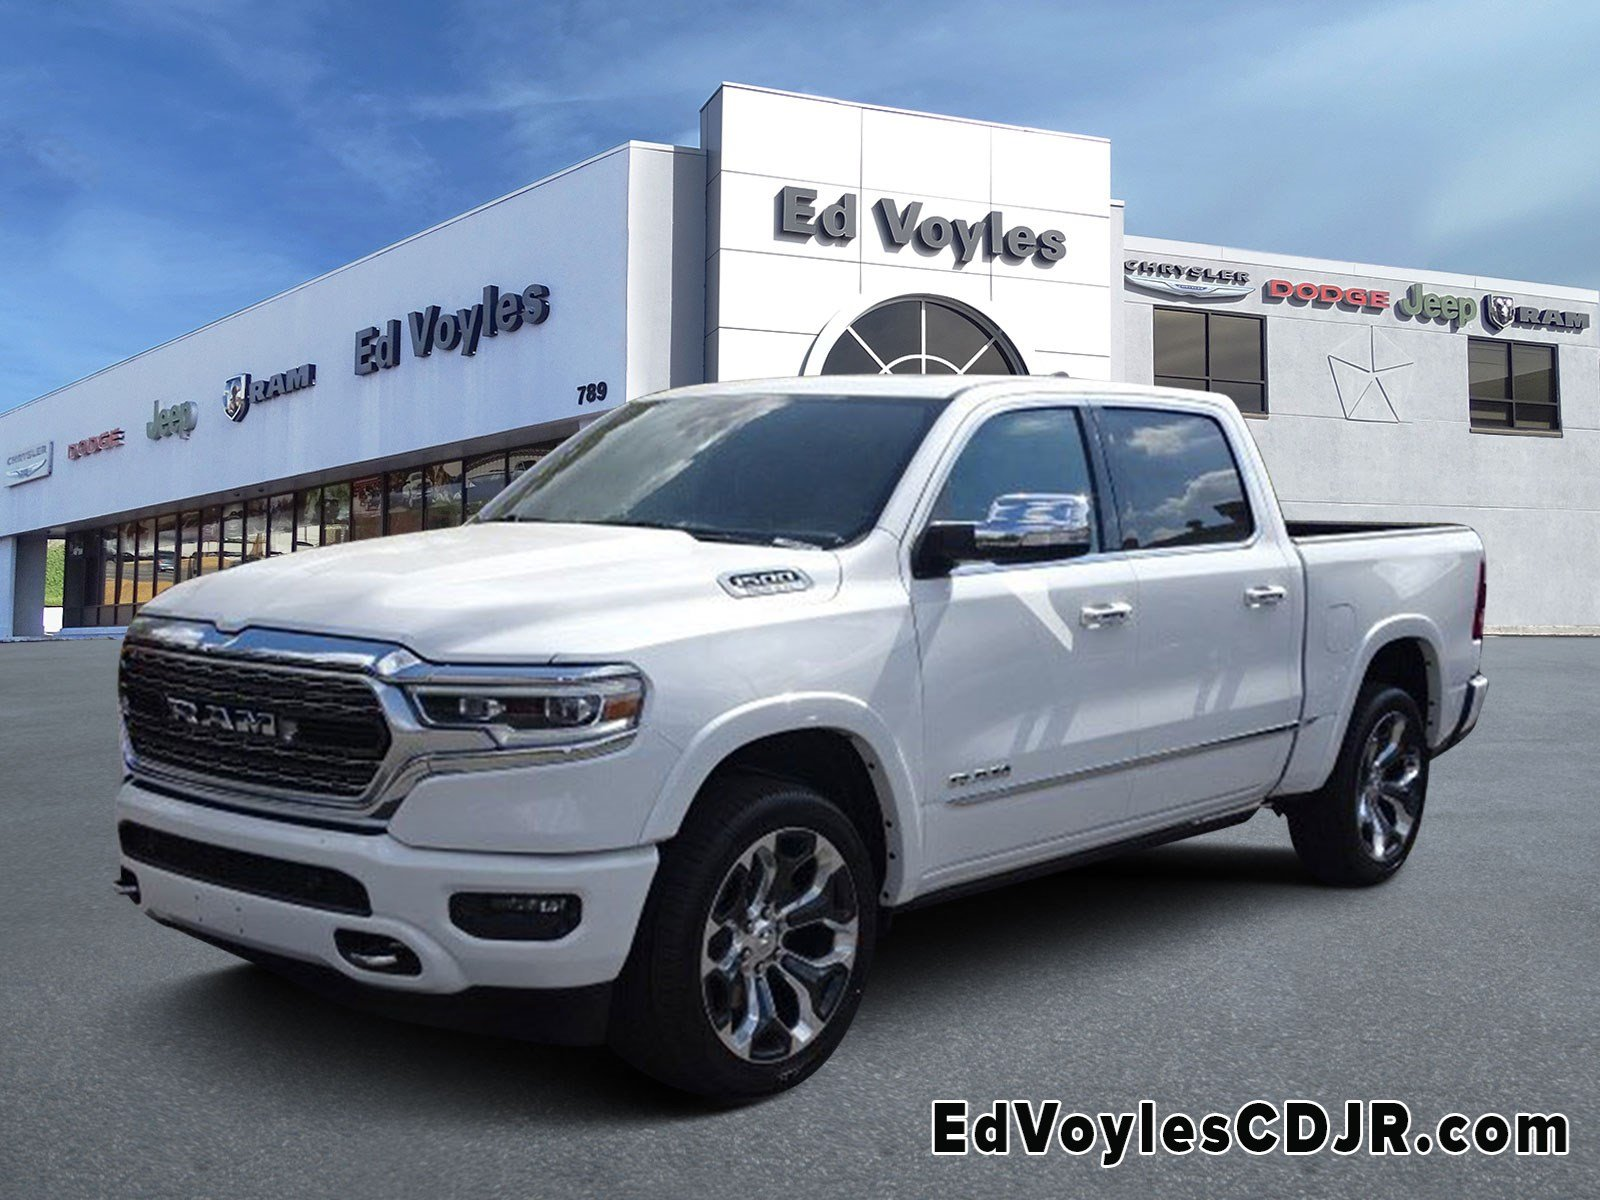 New 2020 Ram 1500 Limited Crew Cab In Marietta 599819 Ed Voyles